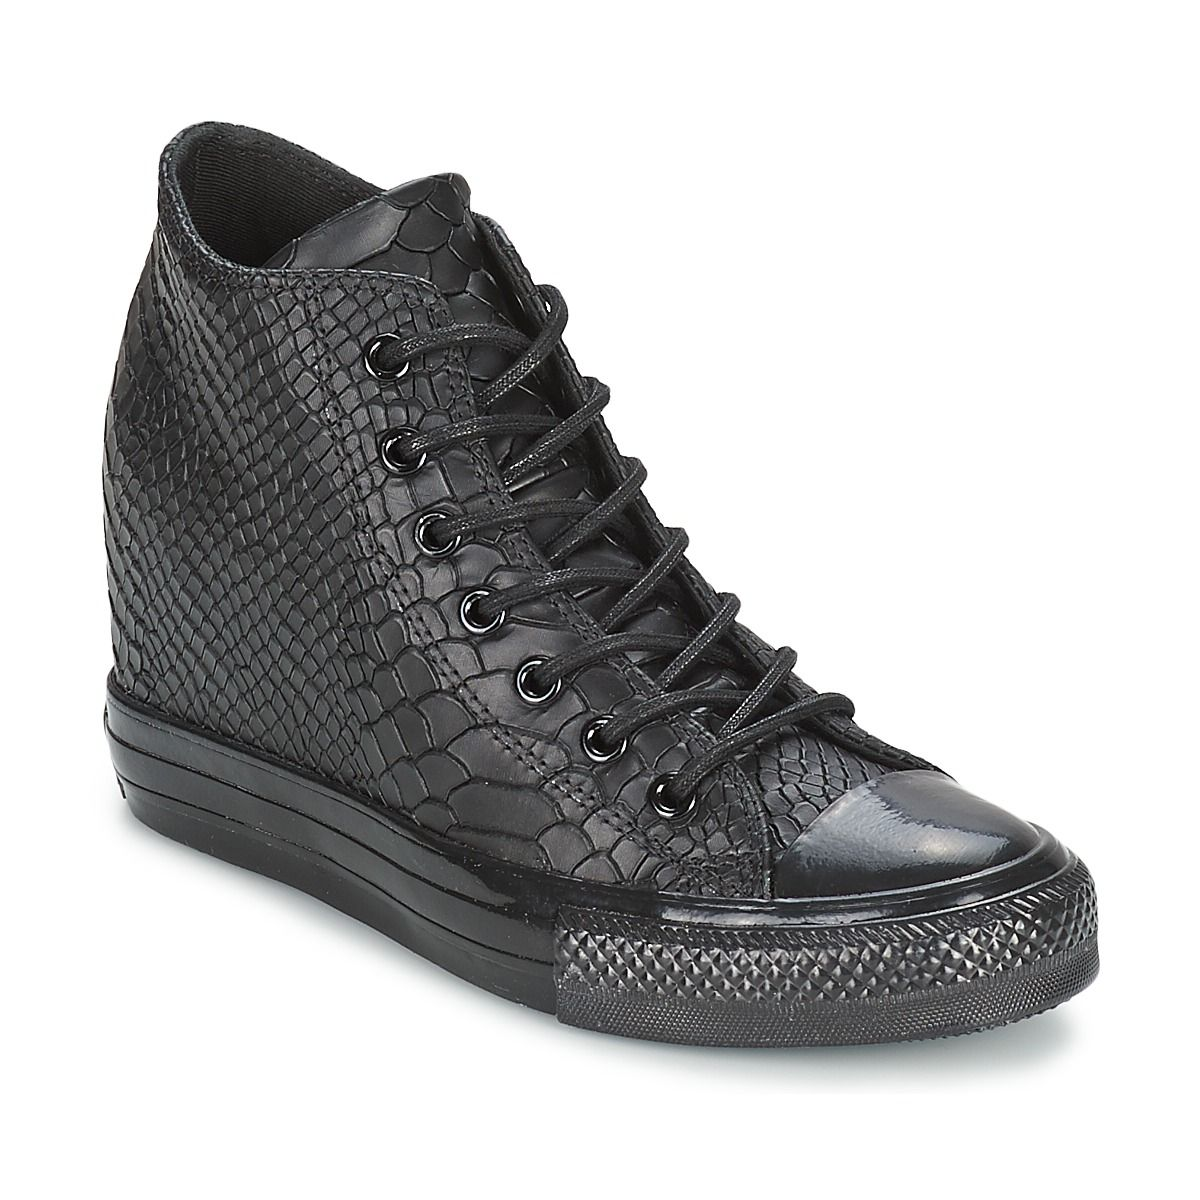 CT AS MID LUX CANVAS METALLIC - CHAUSSURES - Sneakers & Tennis montantesConverse UqXMb